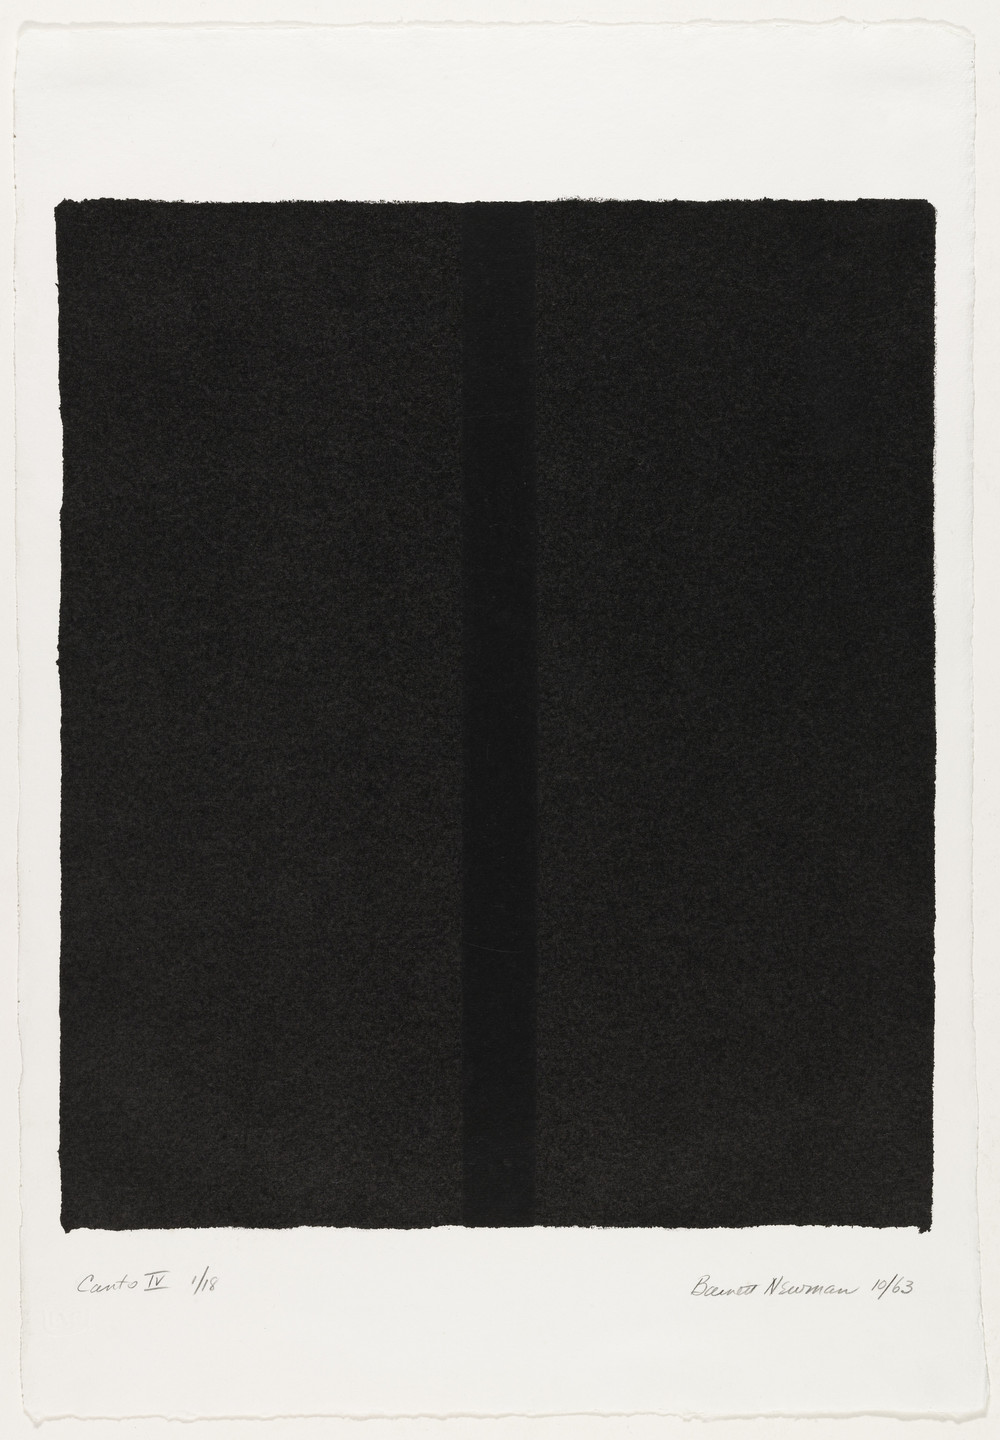 Barnett Newman. Canto IV from 18 Cantos. 1963